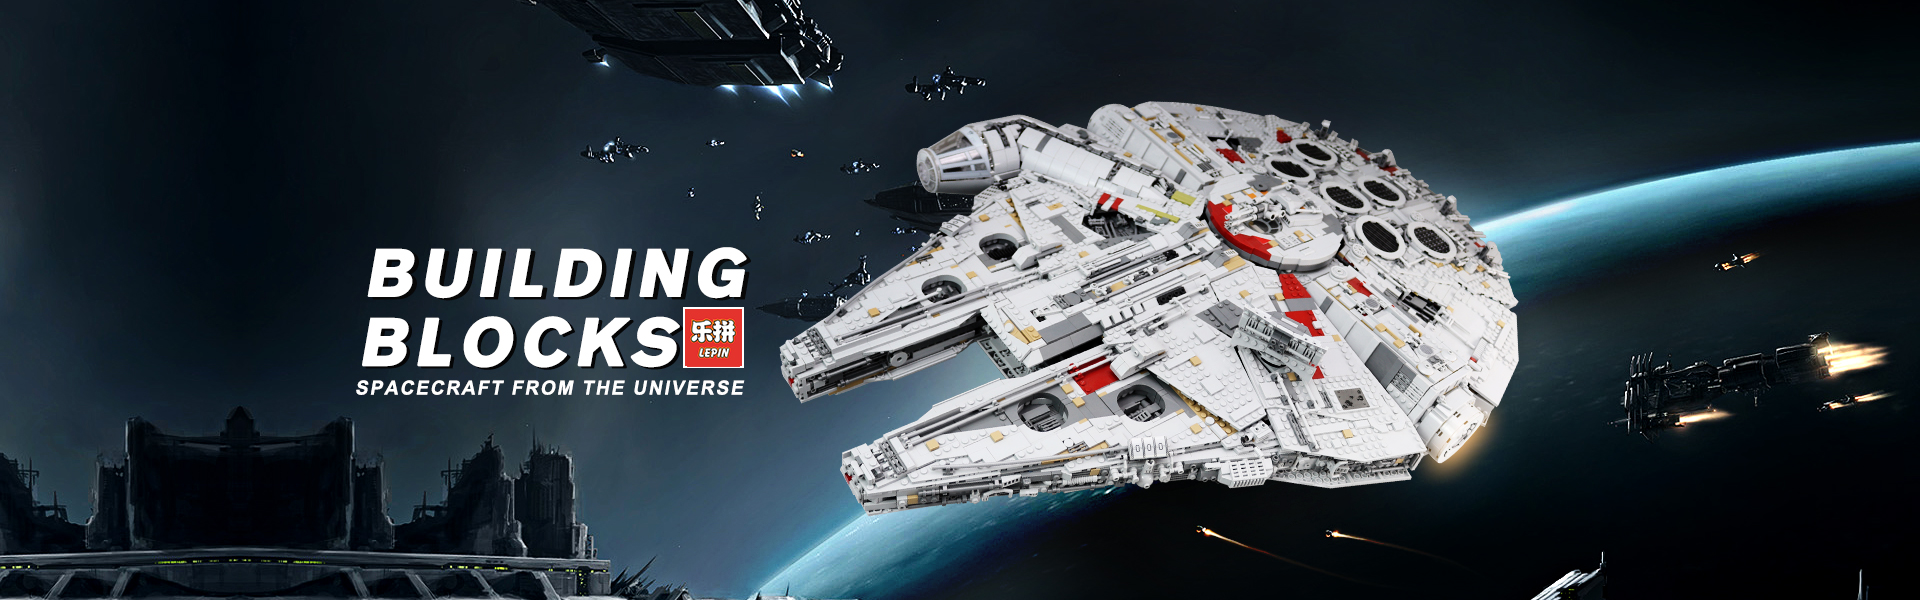 lepin star wars banner 2